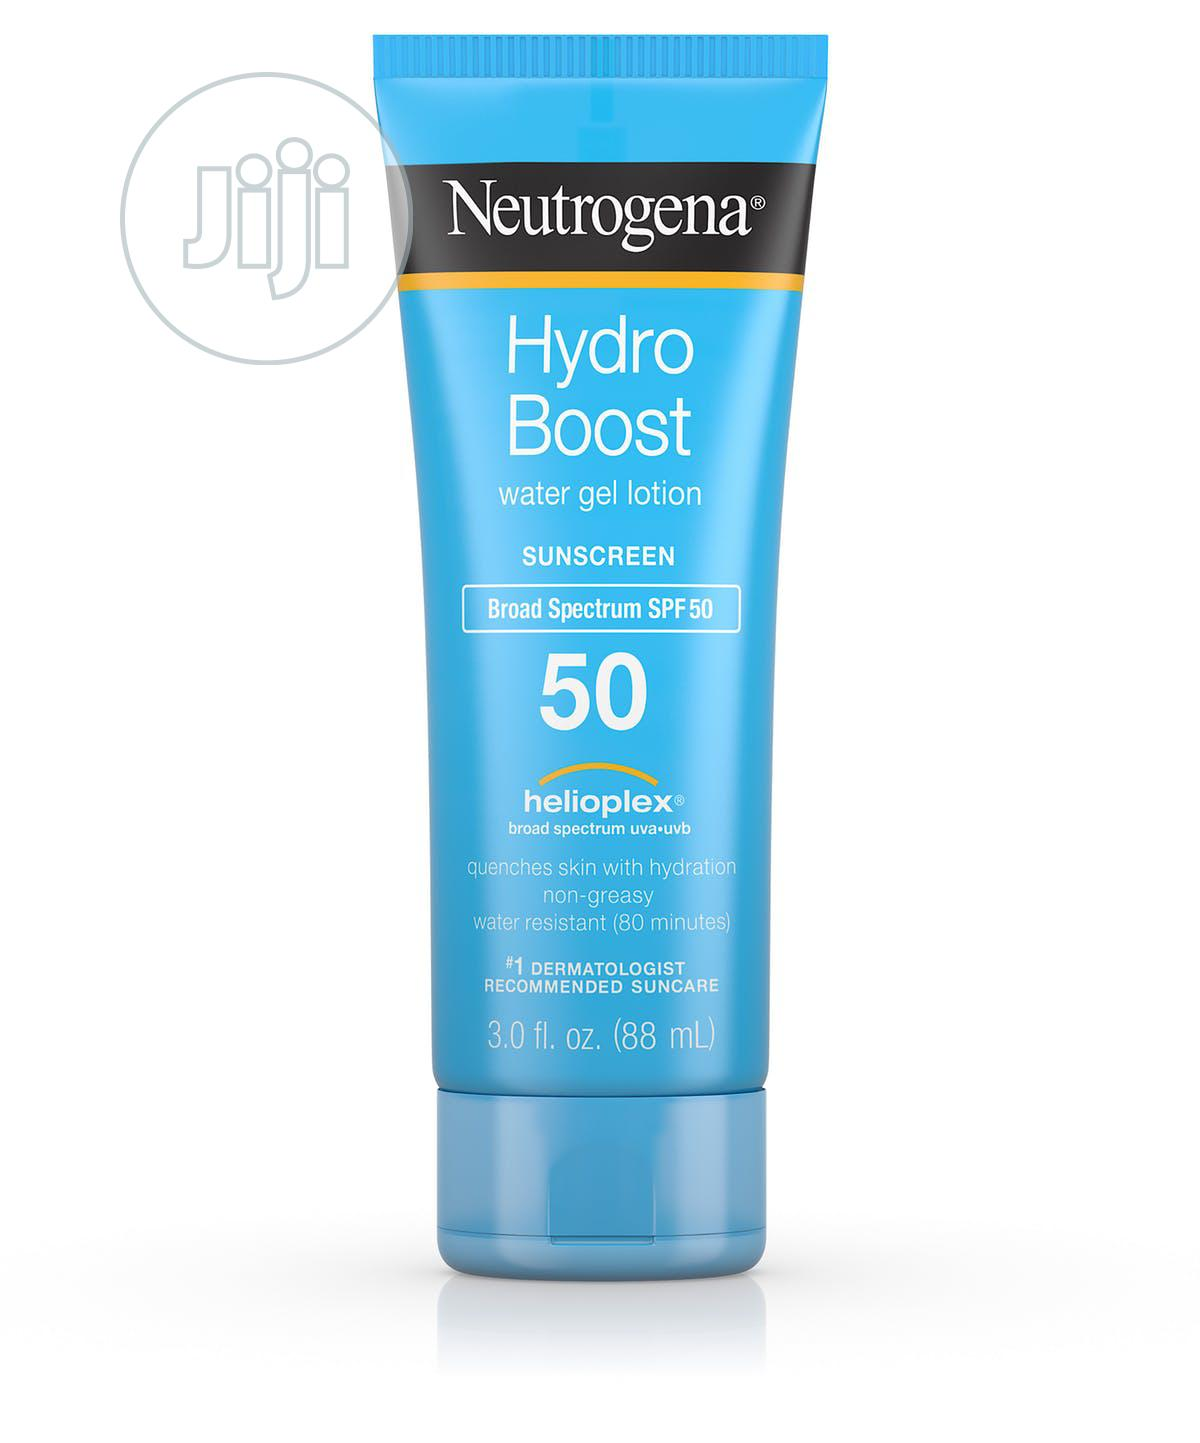 Archive: Hydro Boost Water Gel Lotion Sunscreen SPF 50